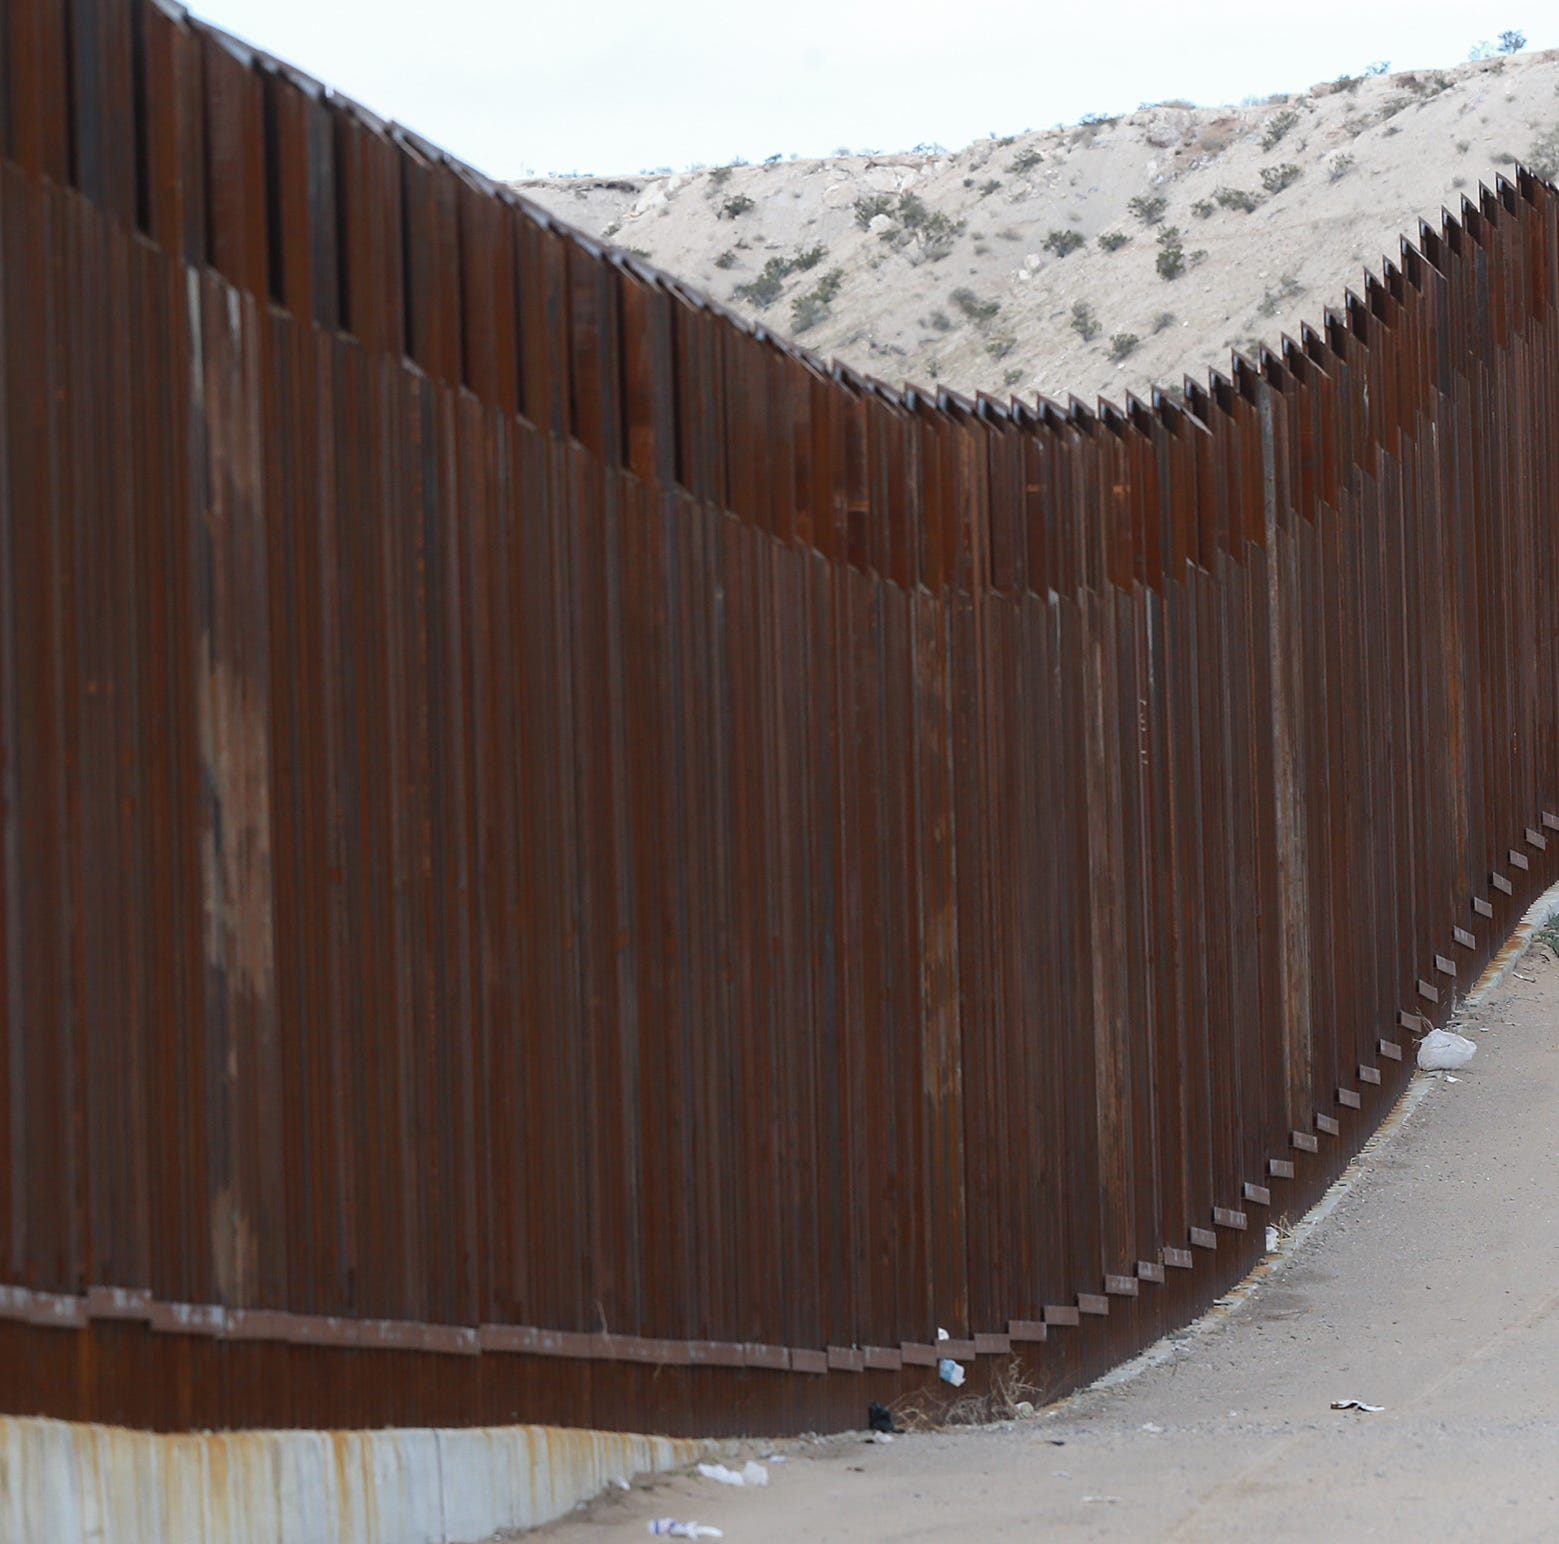 Mexican man, believed to be in U.S. illegally, found dead near border in Southern NM